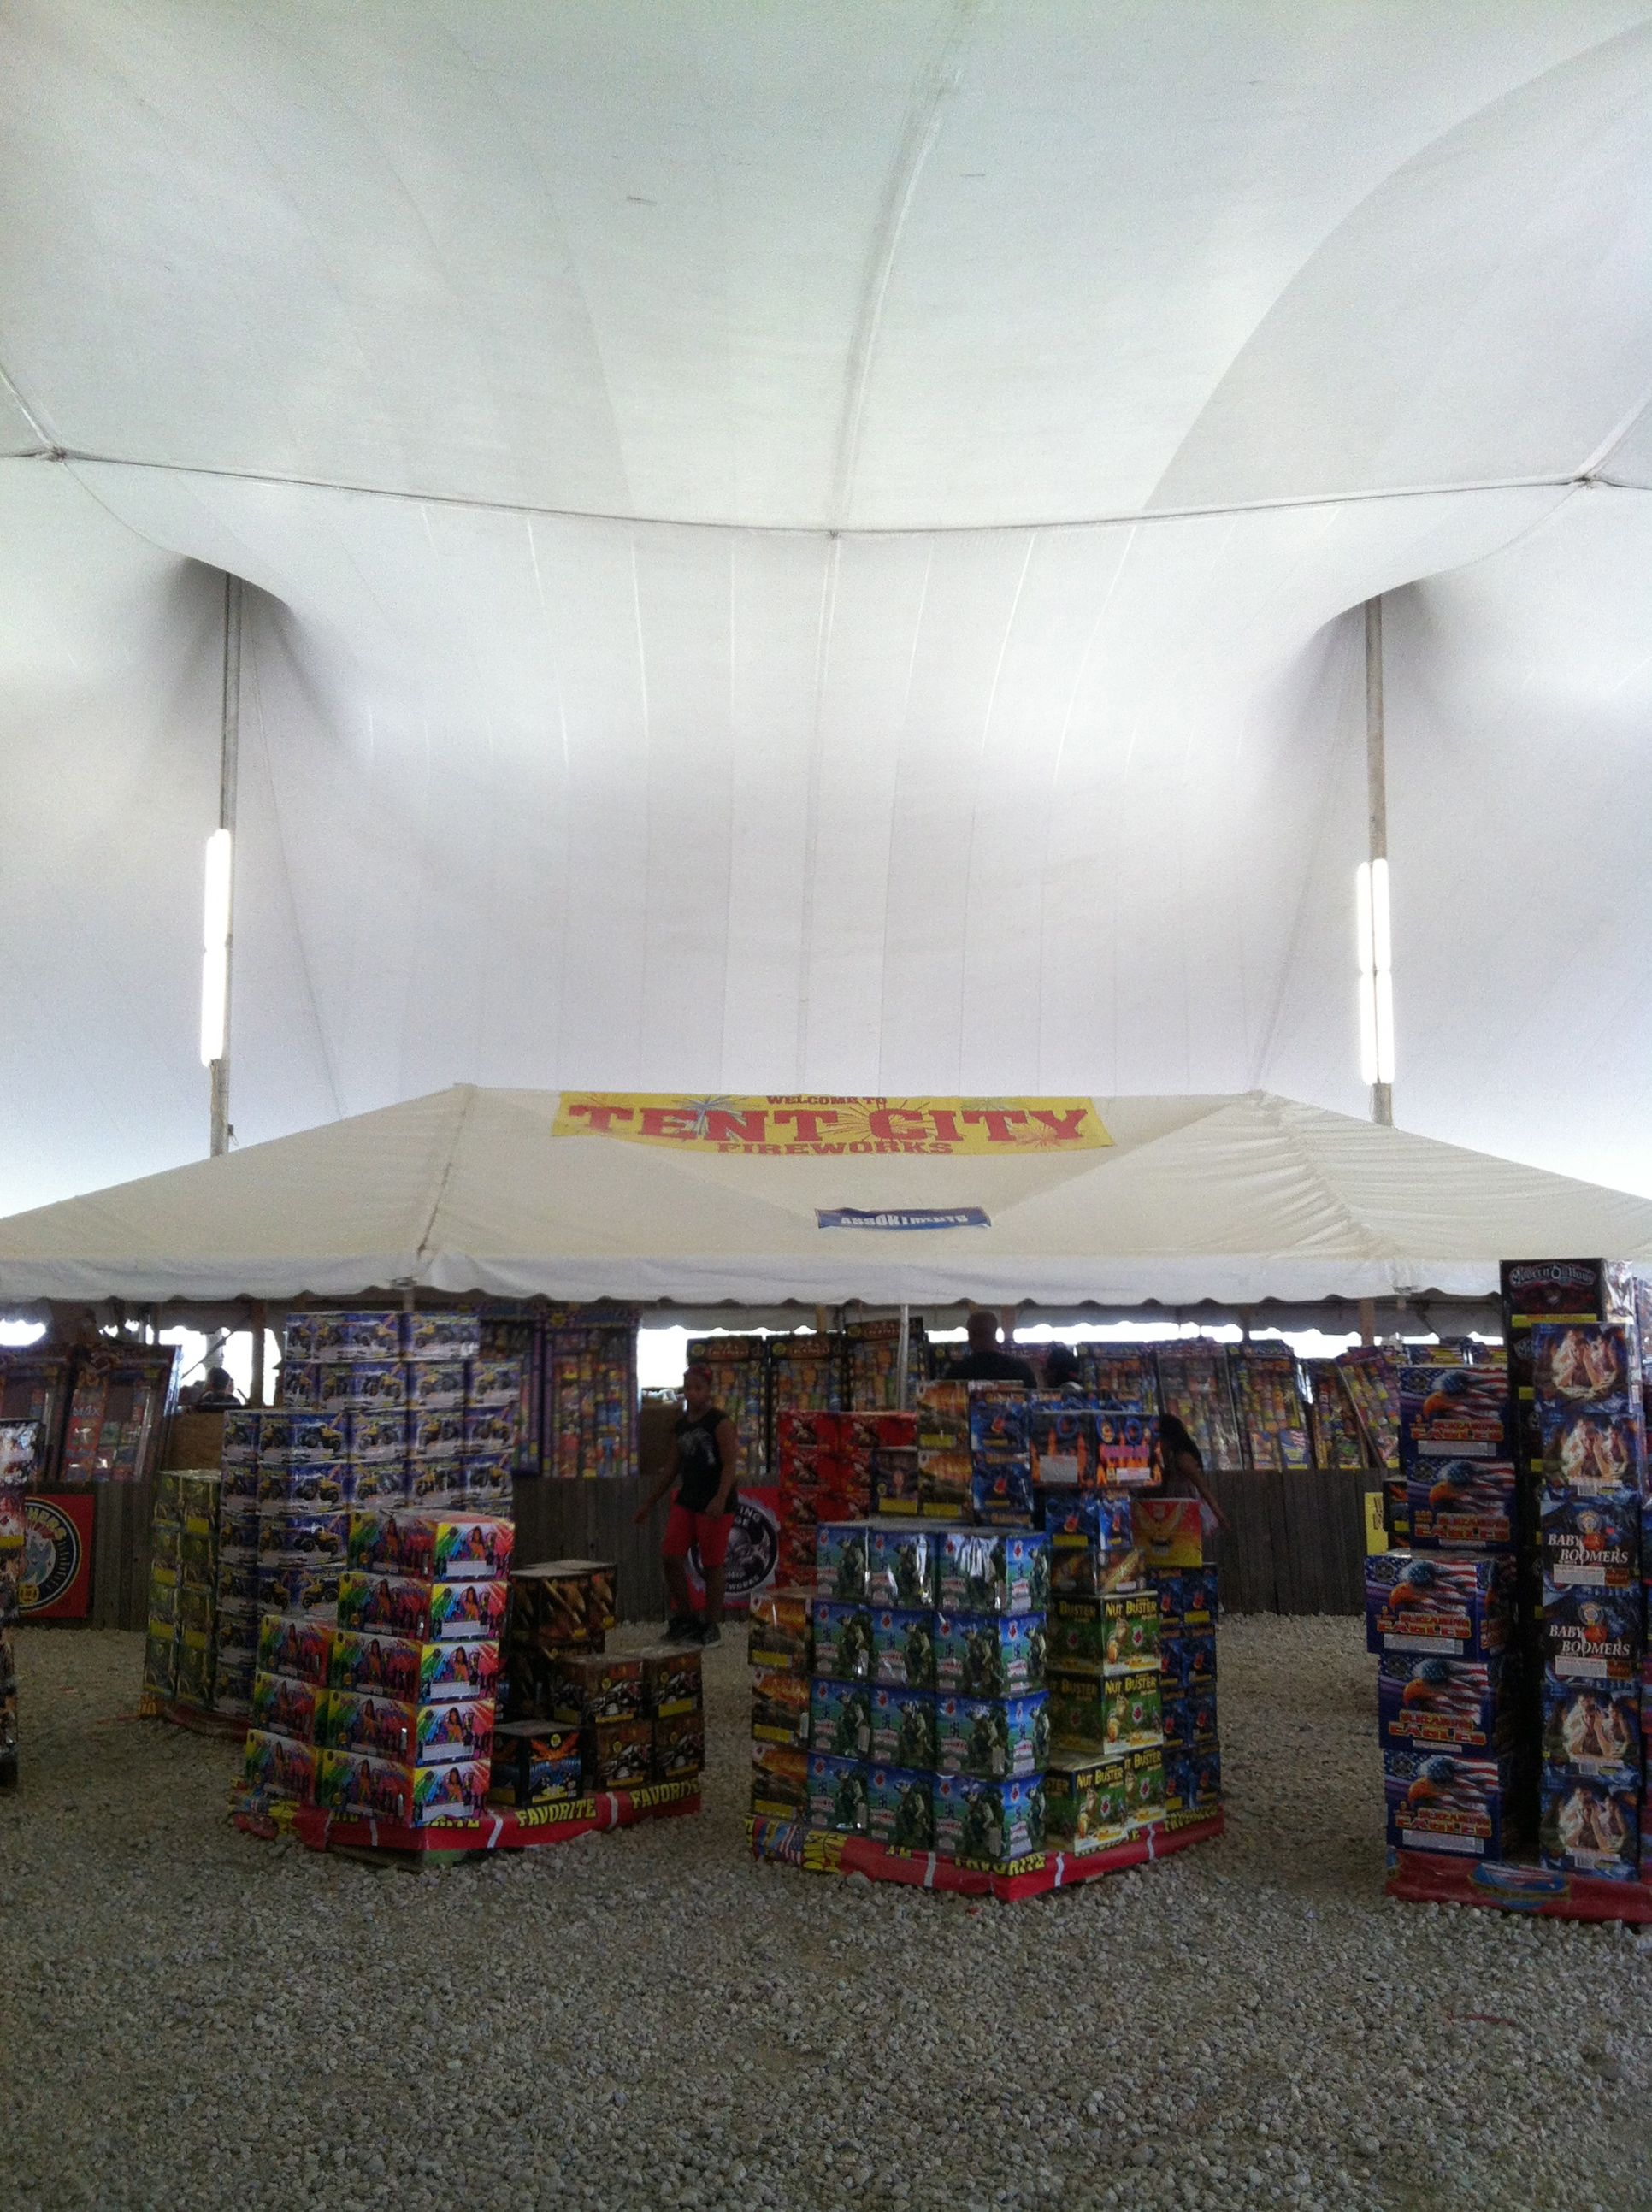 tent city fireworks mecca